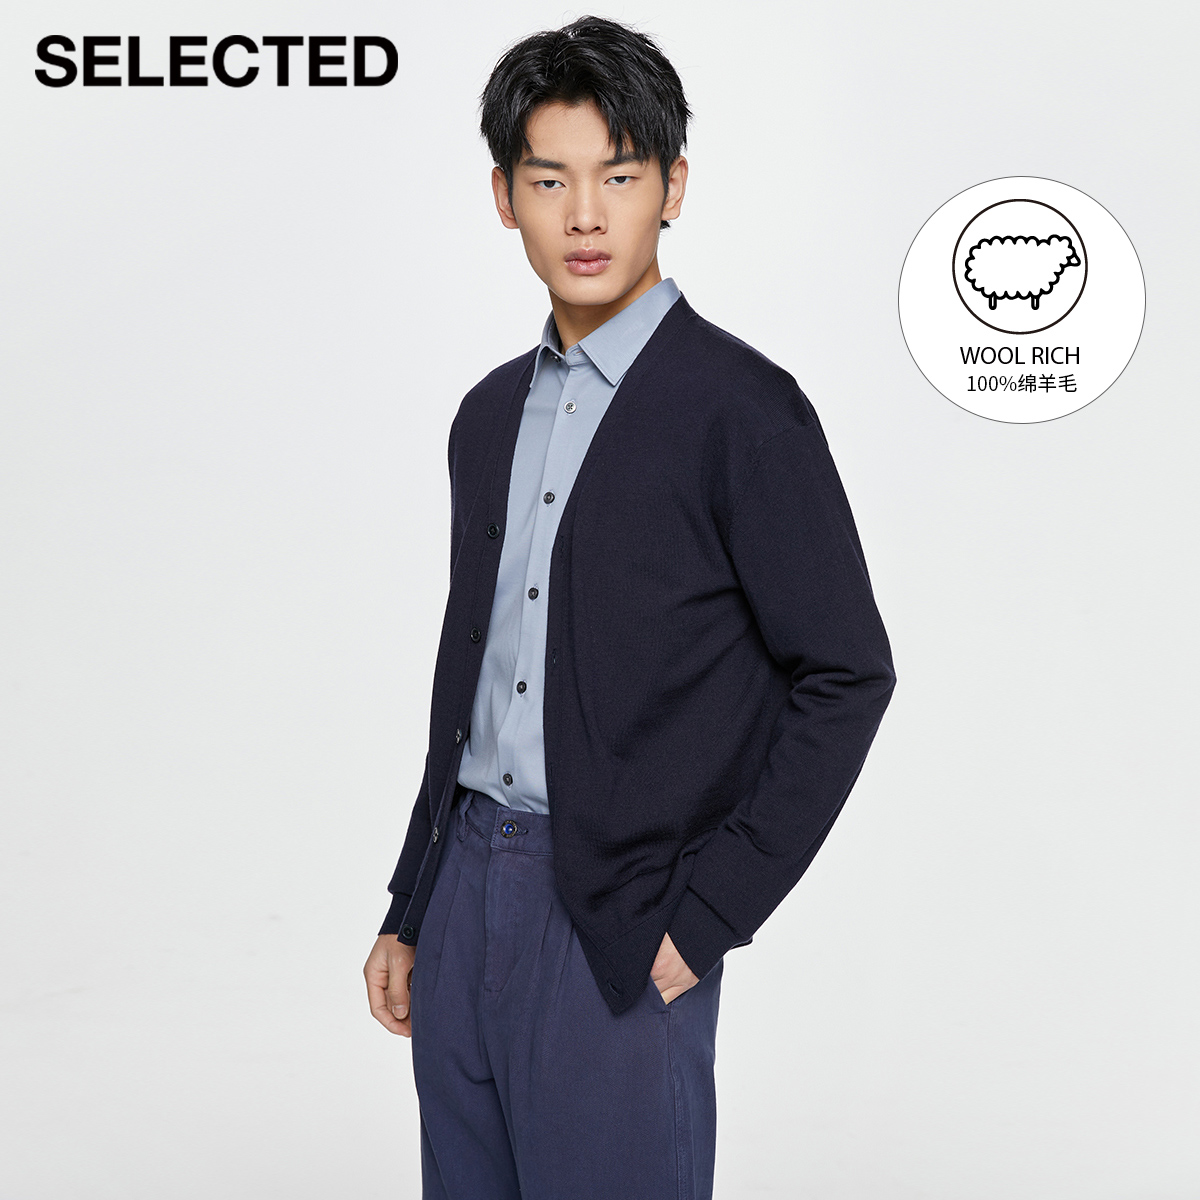 SELECTED Slade new sheep wool trend handsome business knit cardigan sweater male S421124020